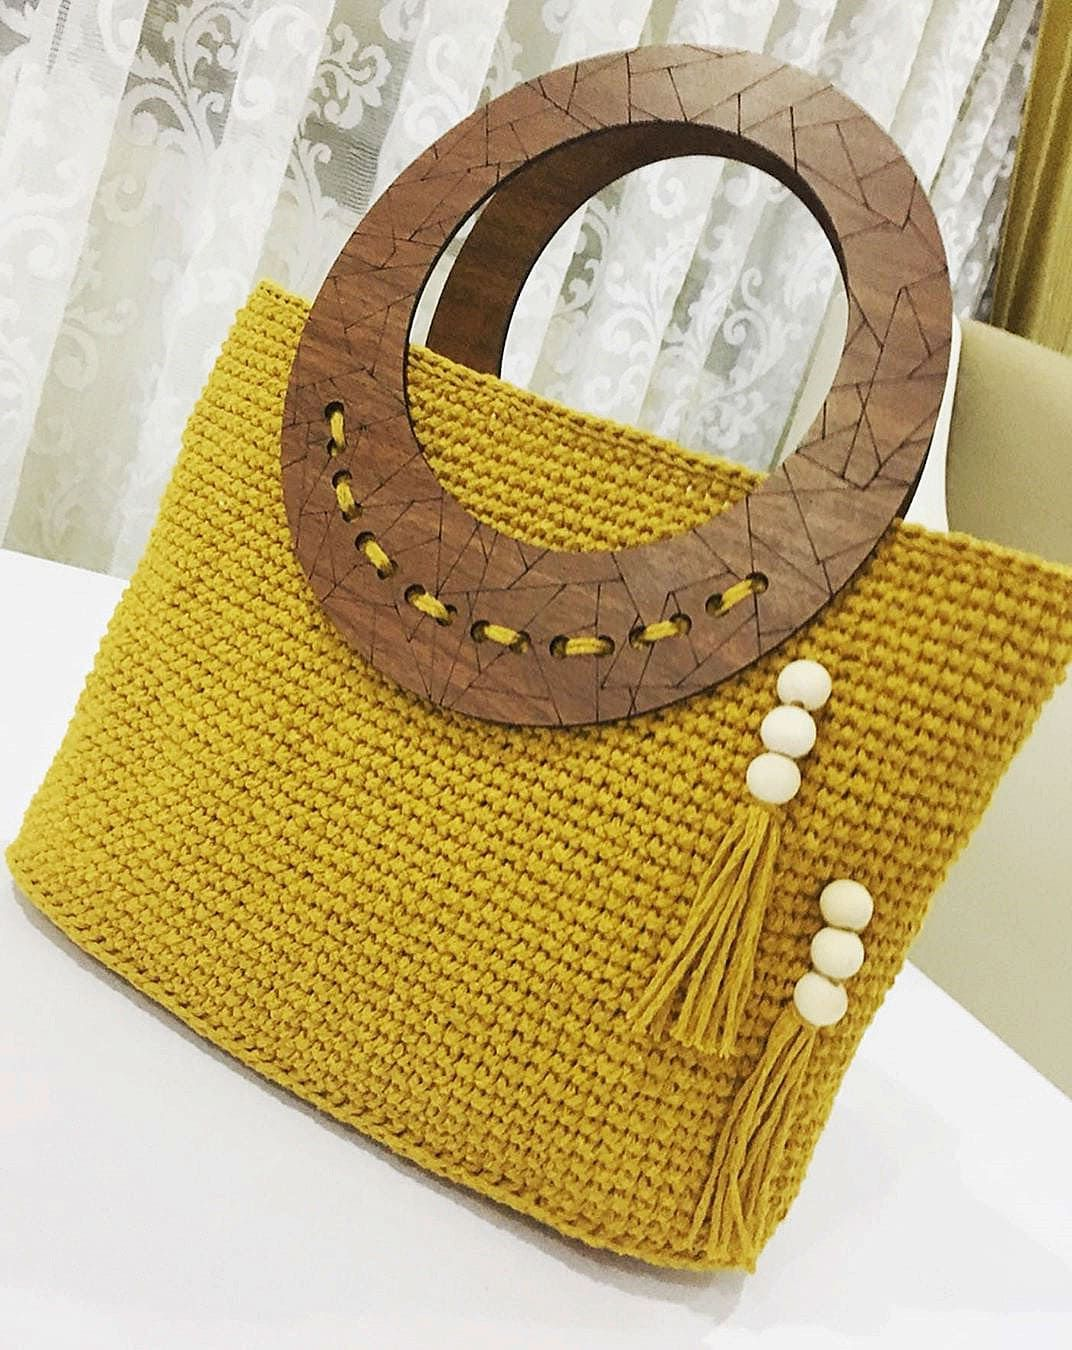 50+ Glamorous Crochet Bag Patterns for Summer 2019 - Page 68 of 81